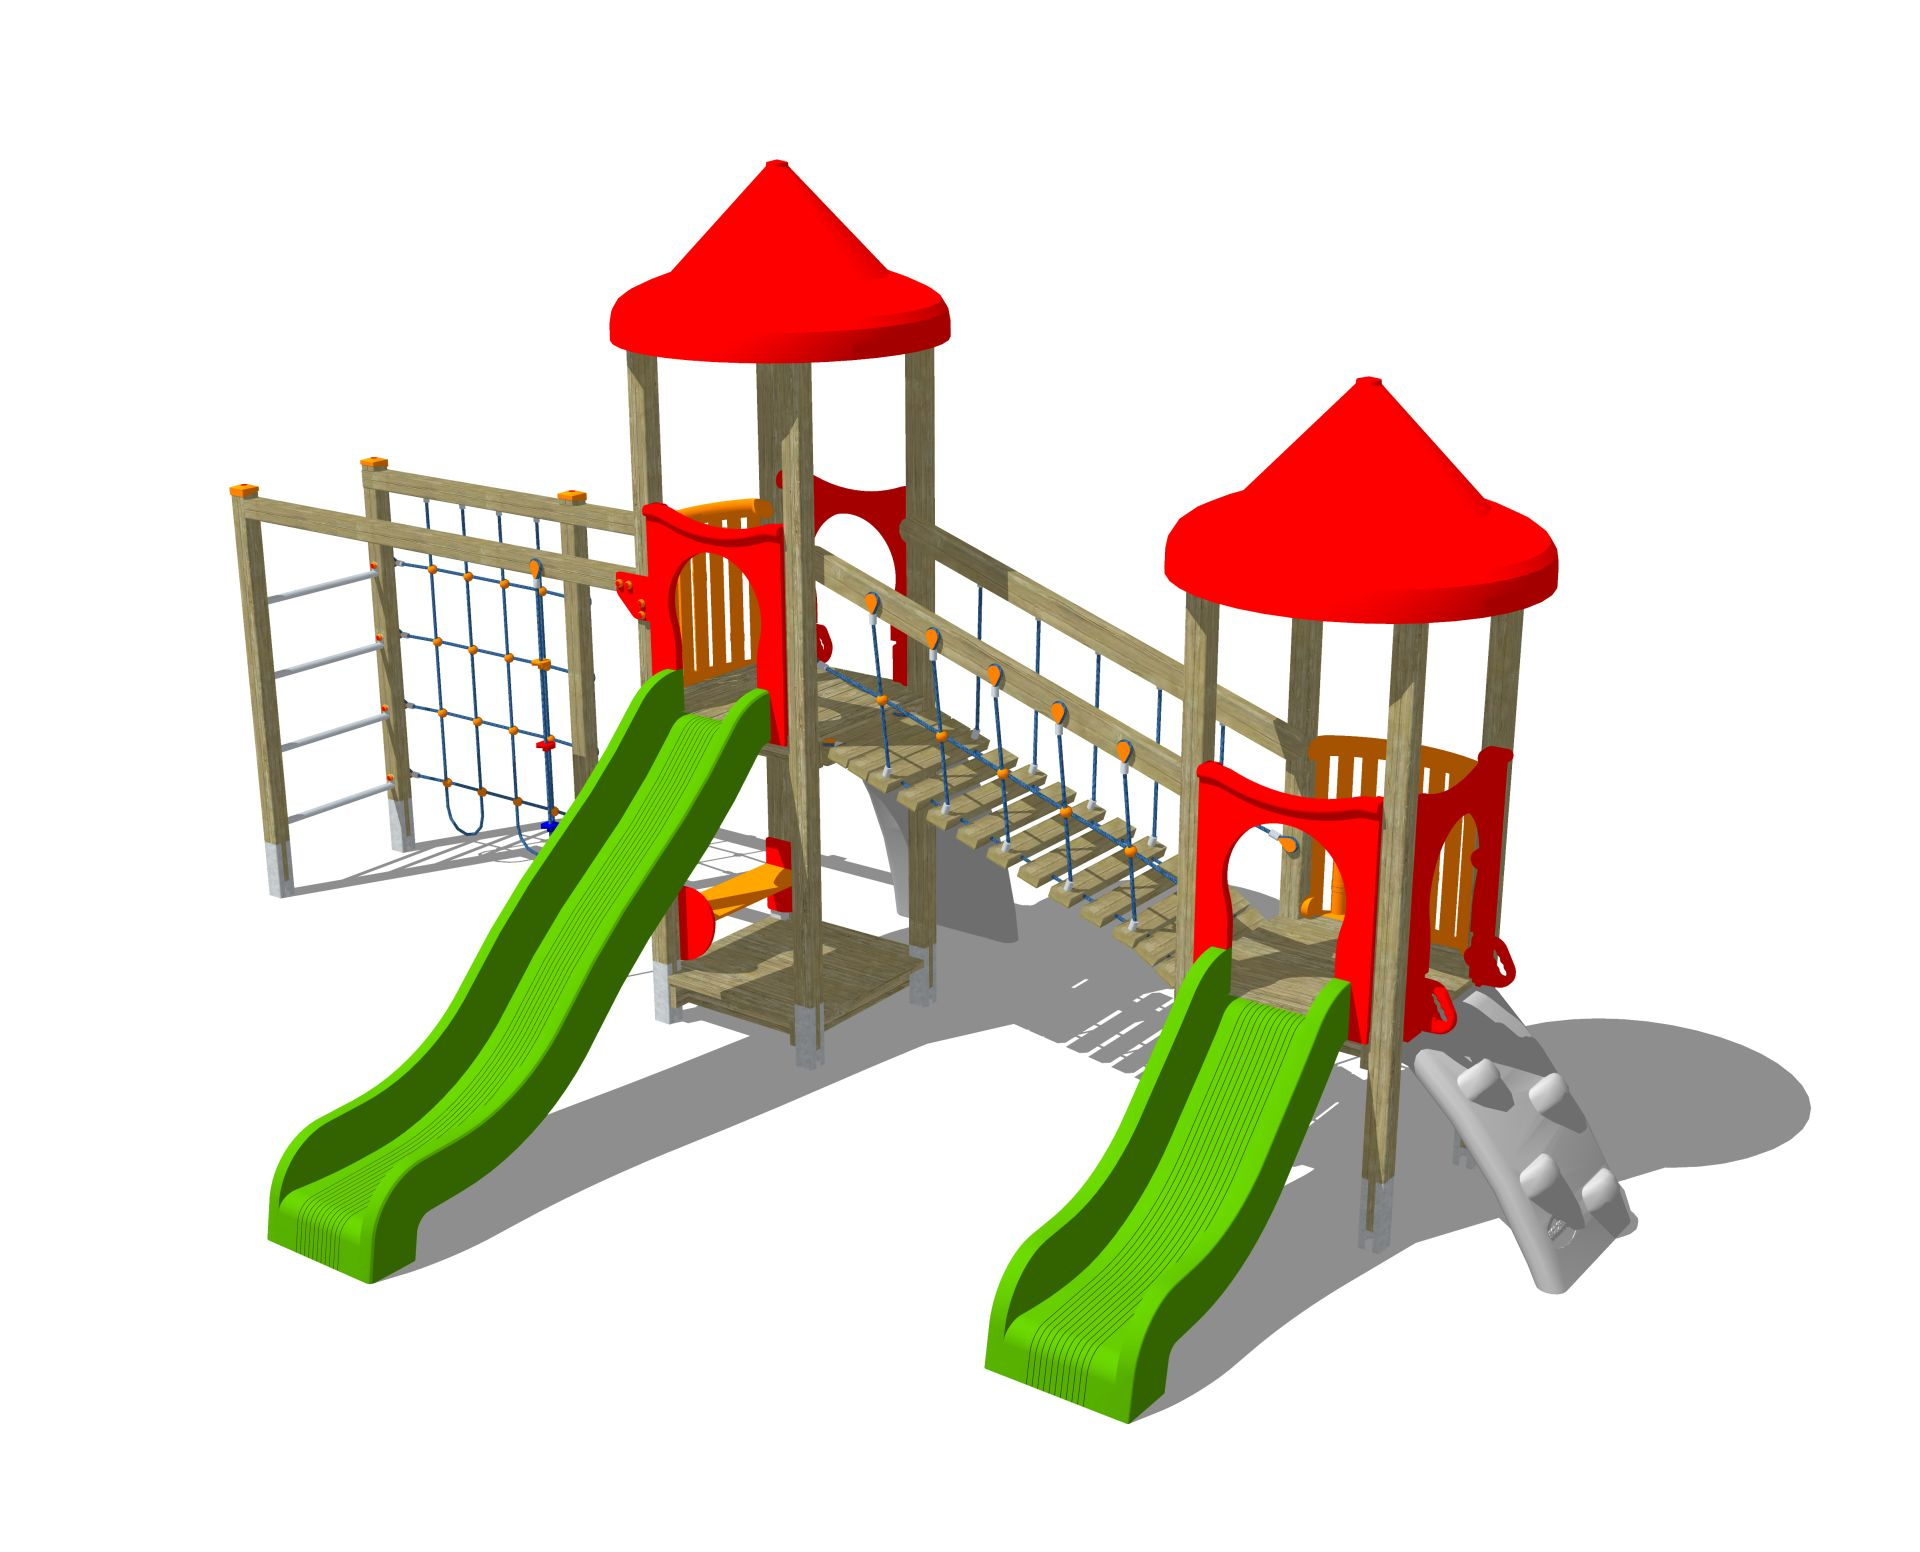 Holzhof ALADIN Aladin 2 towers with ramps h 84 + 144, slides h 84 + 144 + bridge + rope wall climber